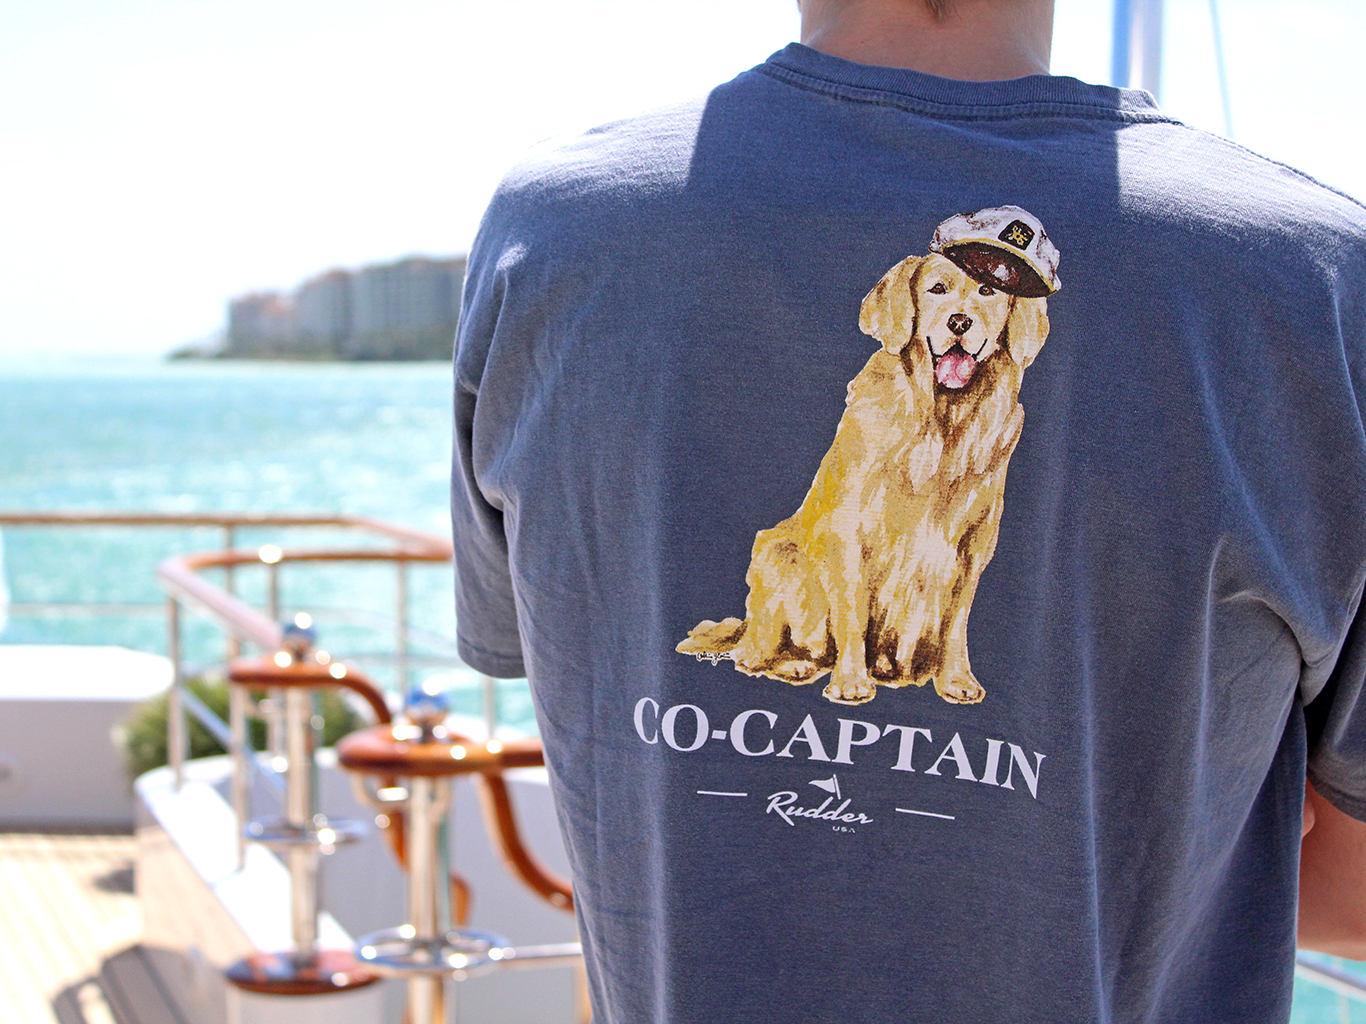 Rudder USA's Co-Captain T Shirt on top of boat. Navy blue nautical Co-Captain's T Shirt